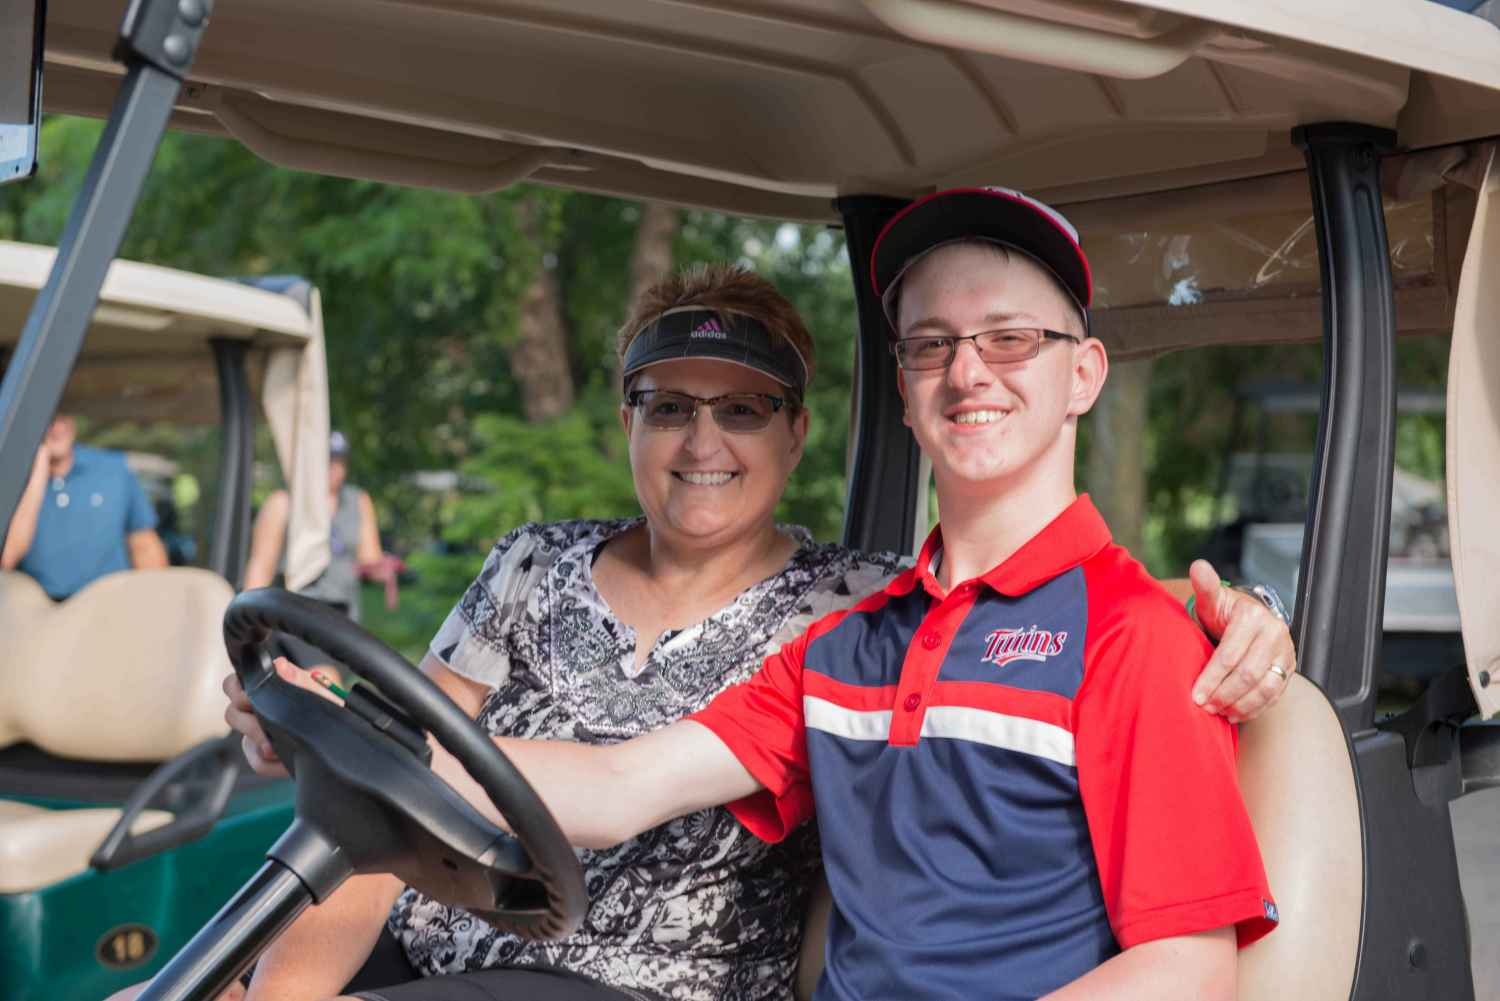 Connor and his mom, Debra, have a fun day at the golf course.